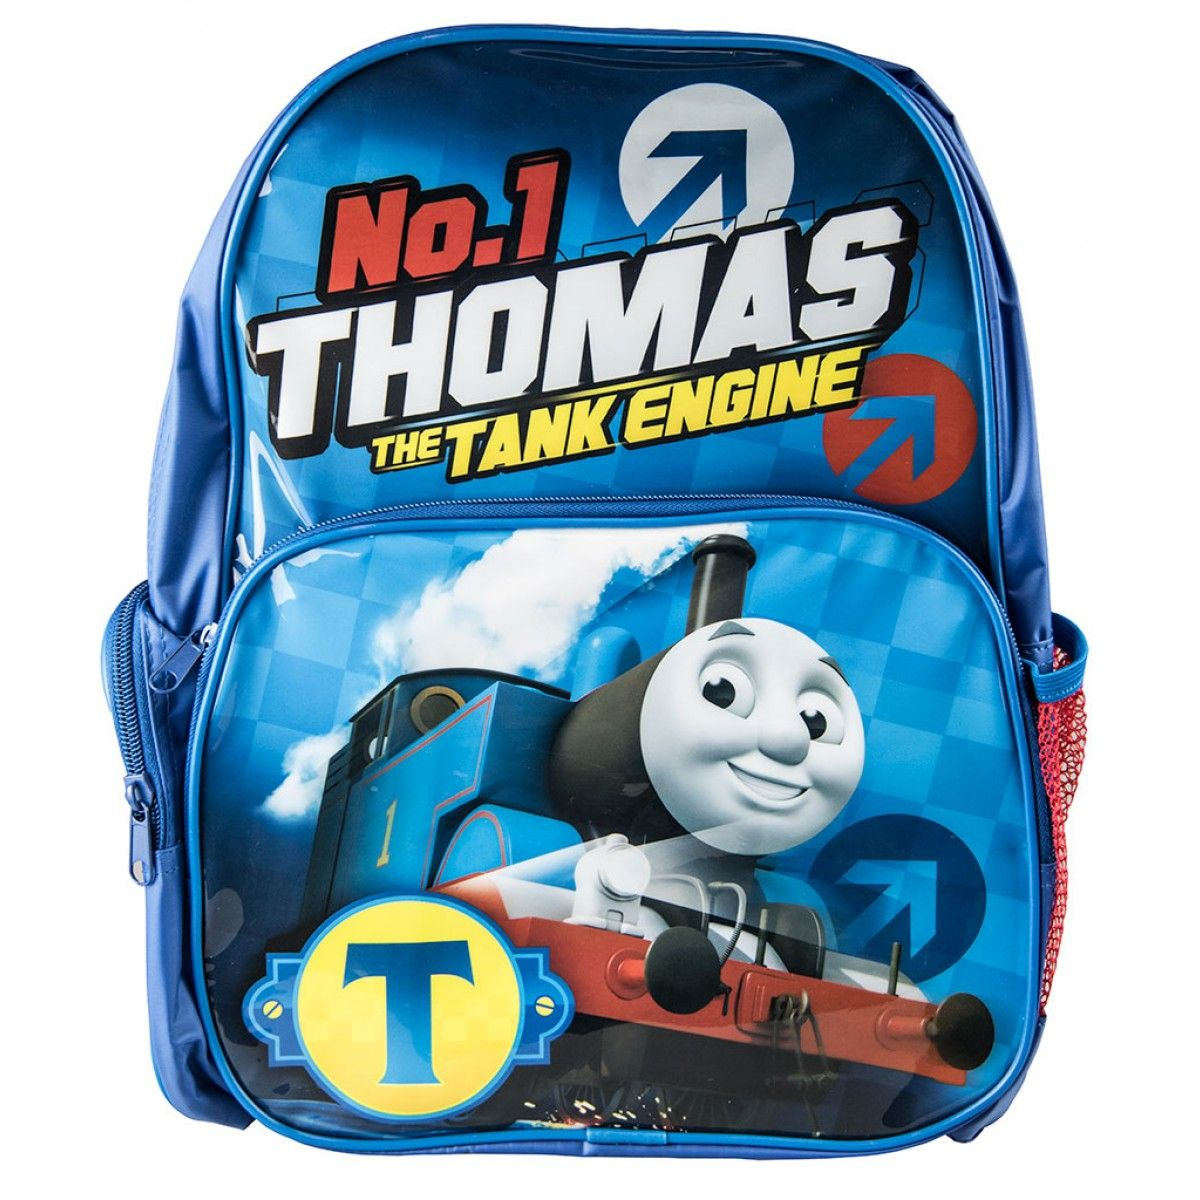 Little tikes thomas the train bed - Take The Toys And Belongings Wherever You Go With This Thomas And Friends Backpack Featuring The Number One Blue Engine The Backpack Features A Fun Design